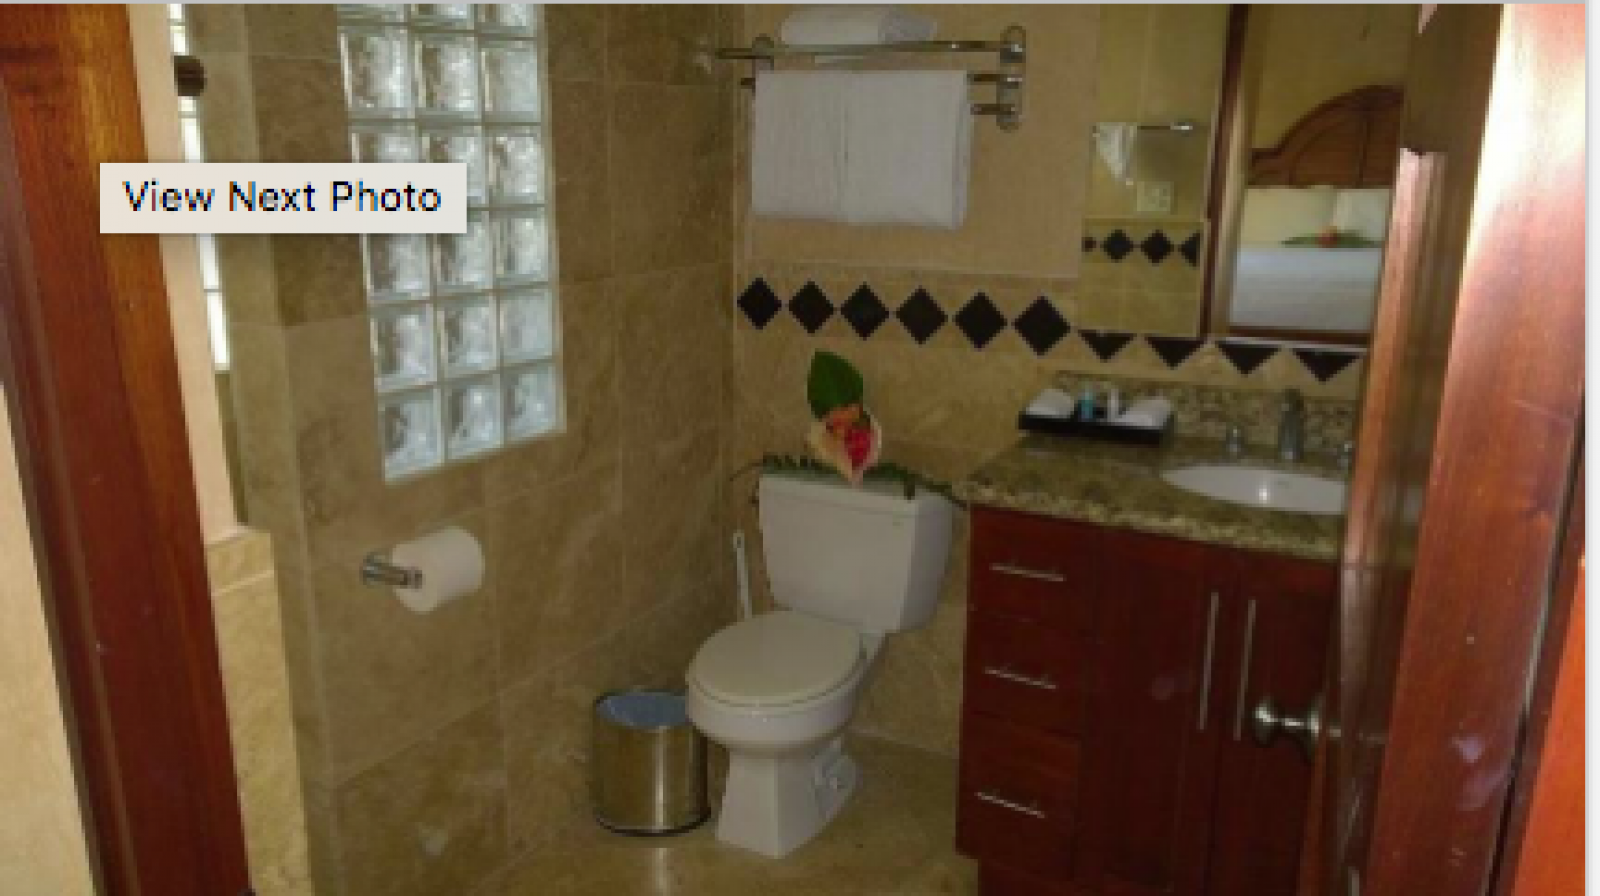 Beautifully decorative and spacious ensuite bathroom.